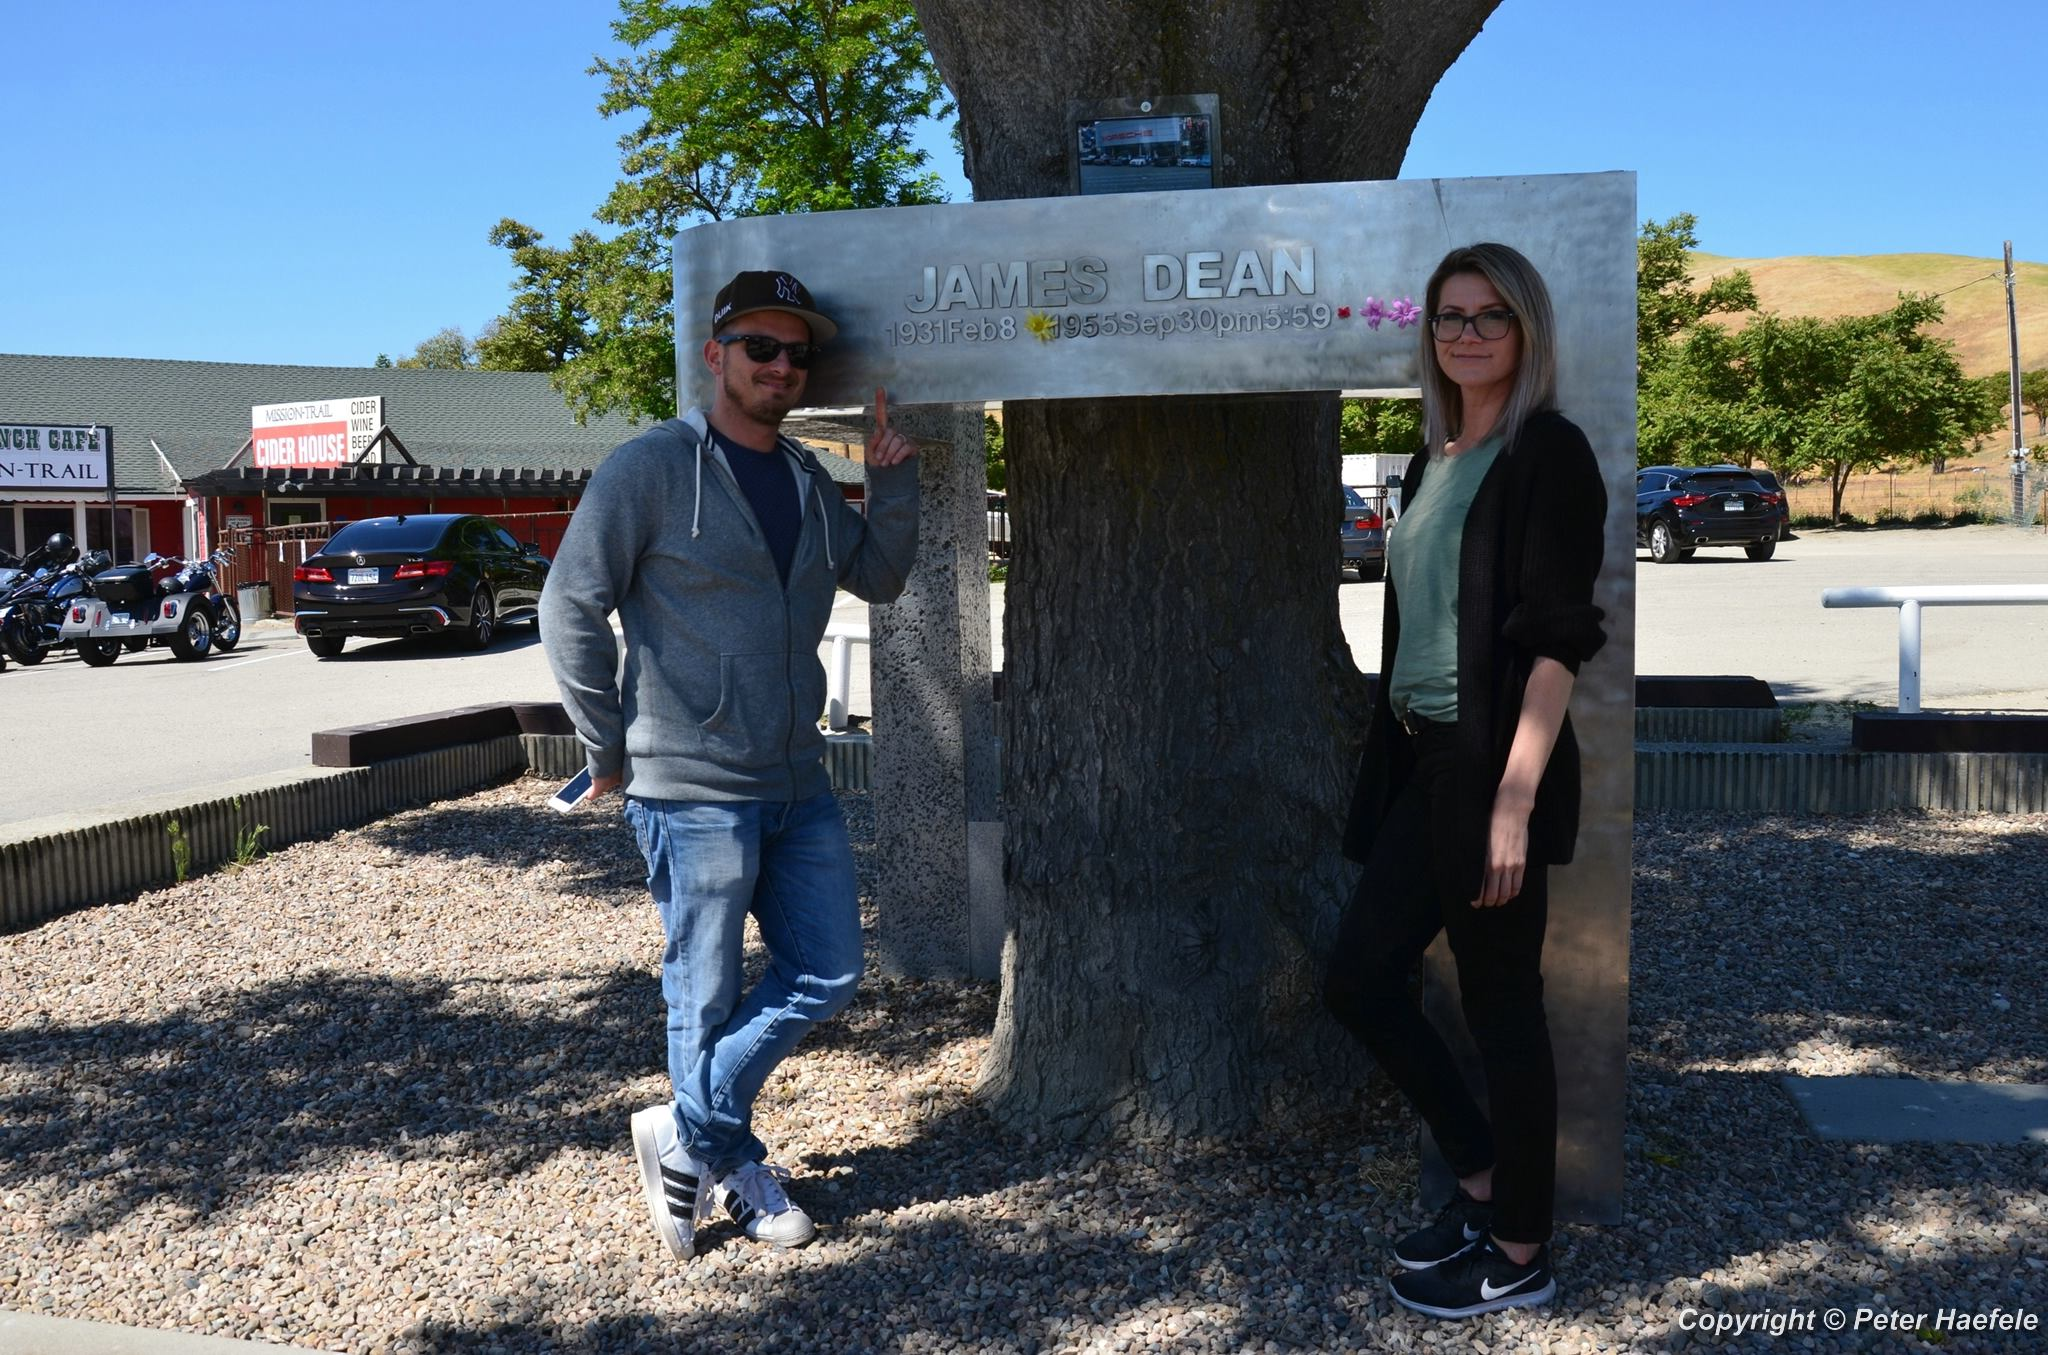 James Dean Memorial - Jack Ranch Café - Cholame - California